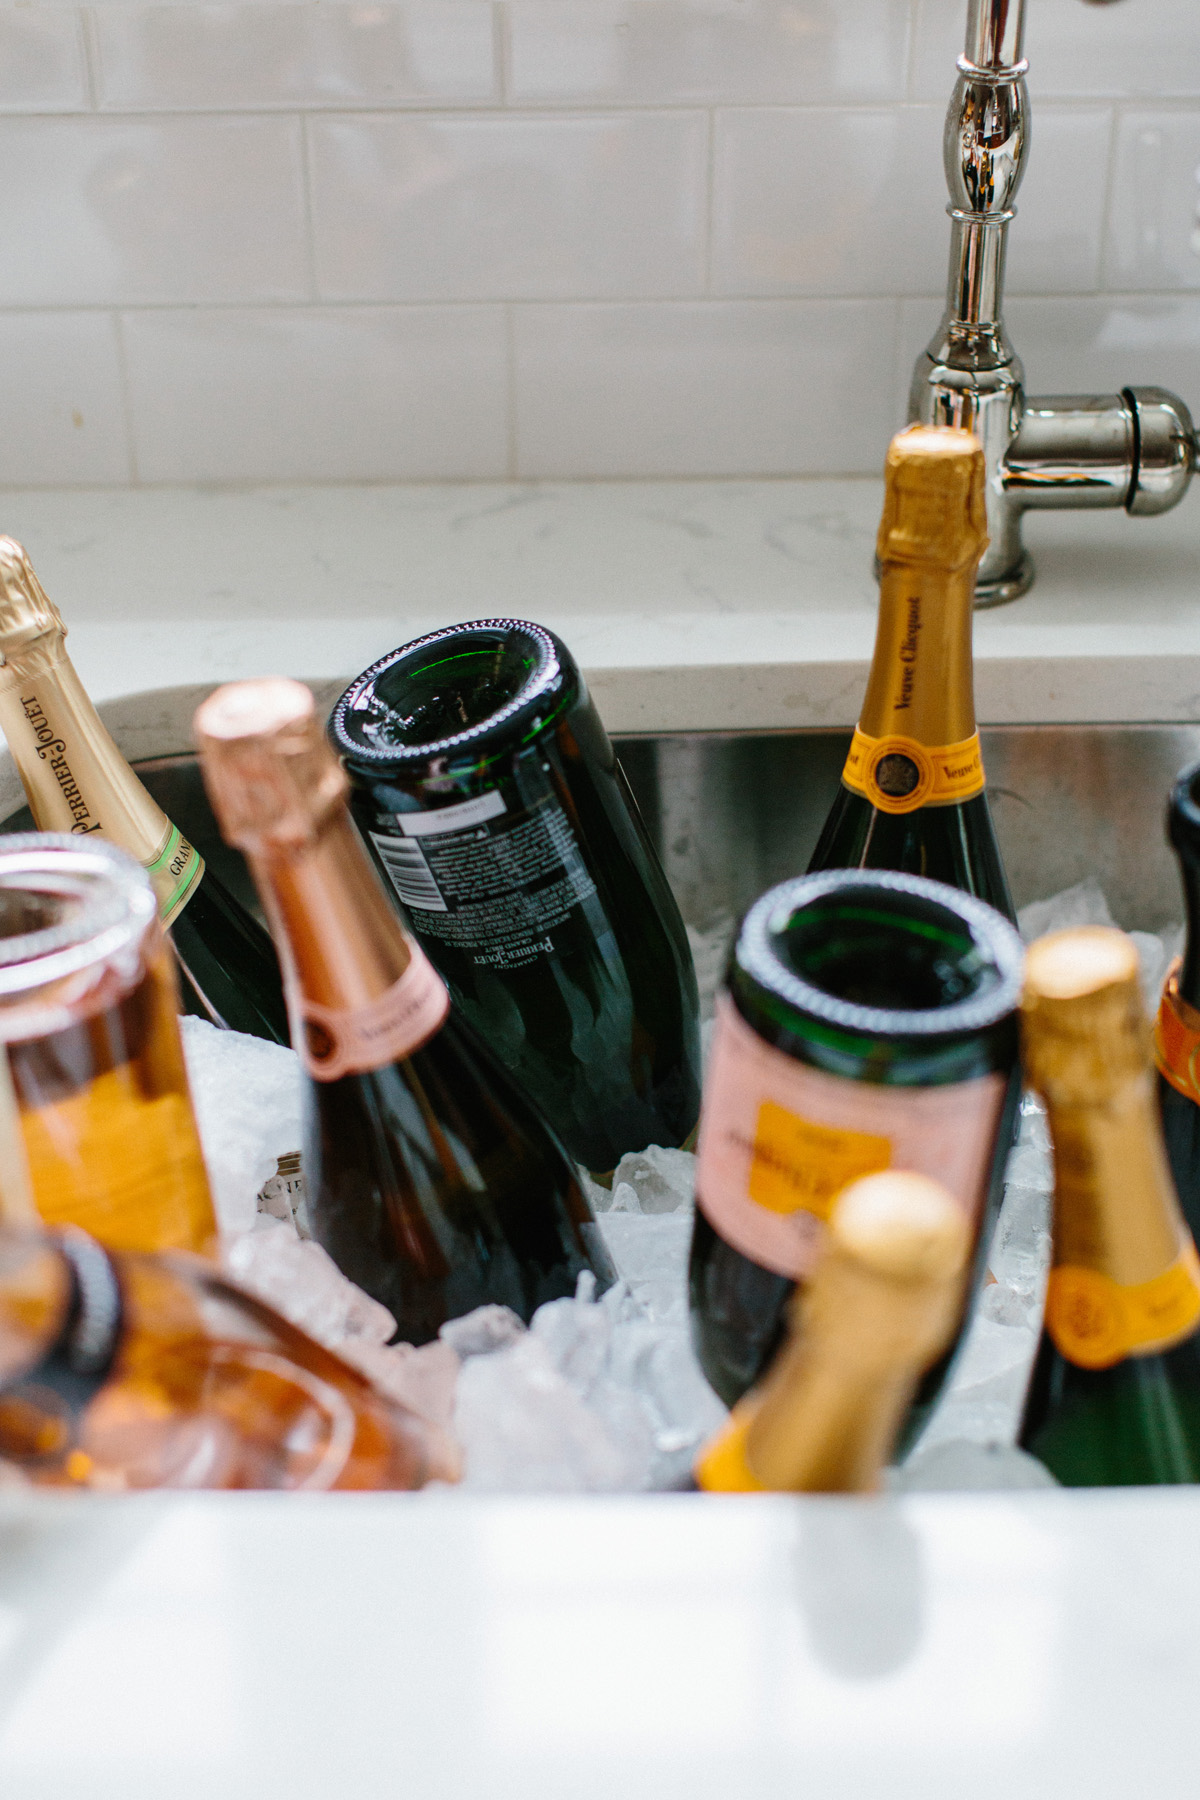 erinmcginn_abbycapalbo_NYE_024.jpgChampagne Bubbly Rosé New Years Eve Party | Styling: Abby Capalbo | Photography: Erin McGinn